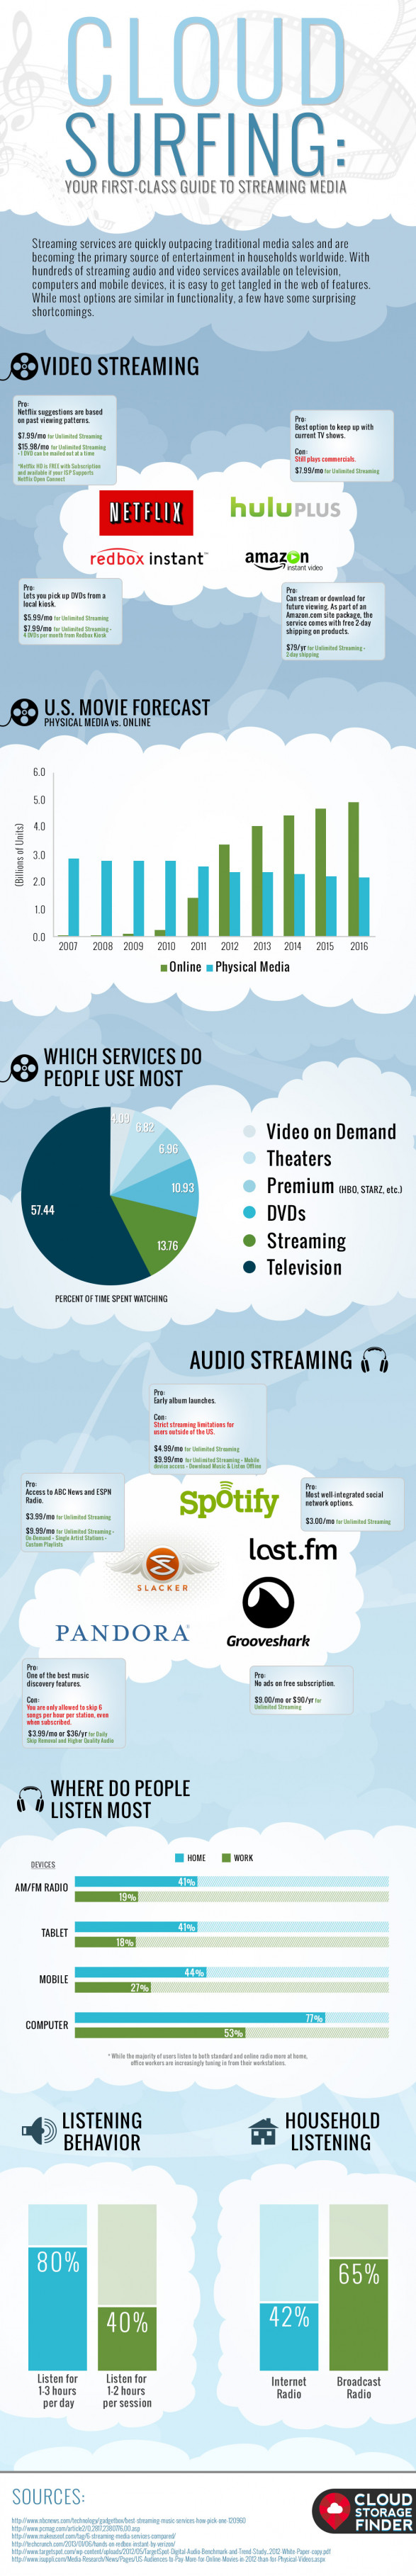 Cloud Surfing: Your First-Class Guide to Streaming Media